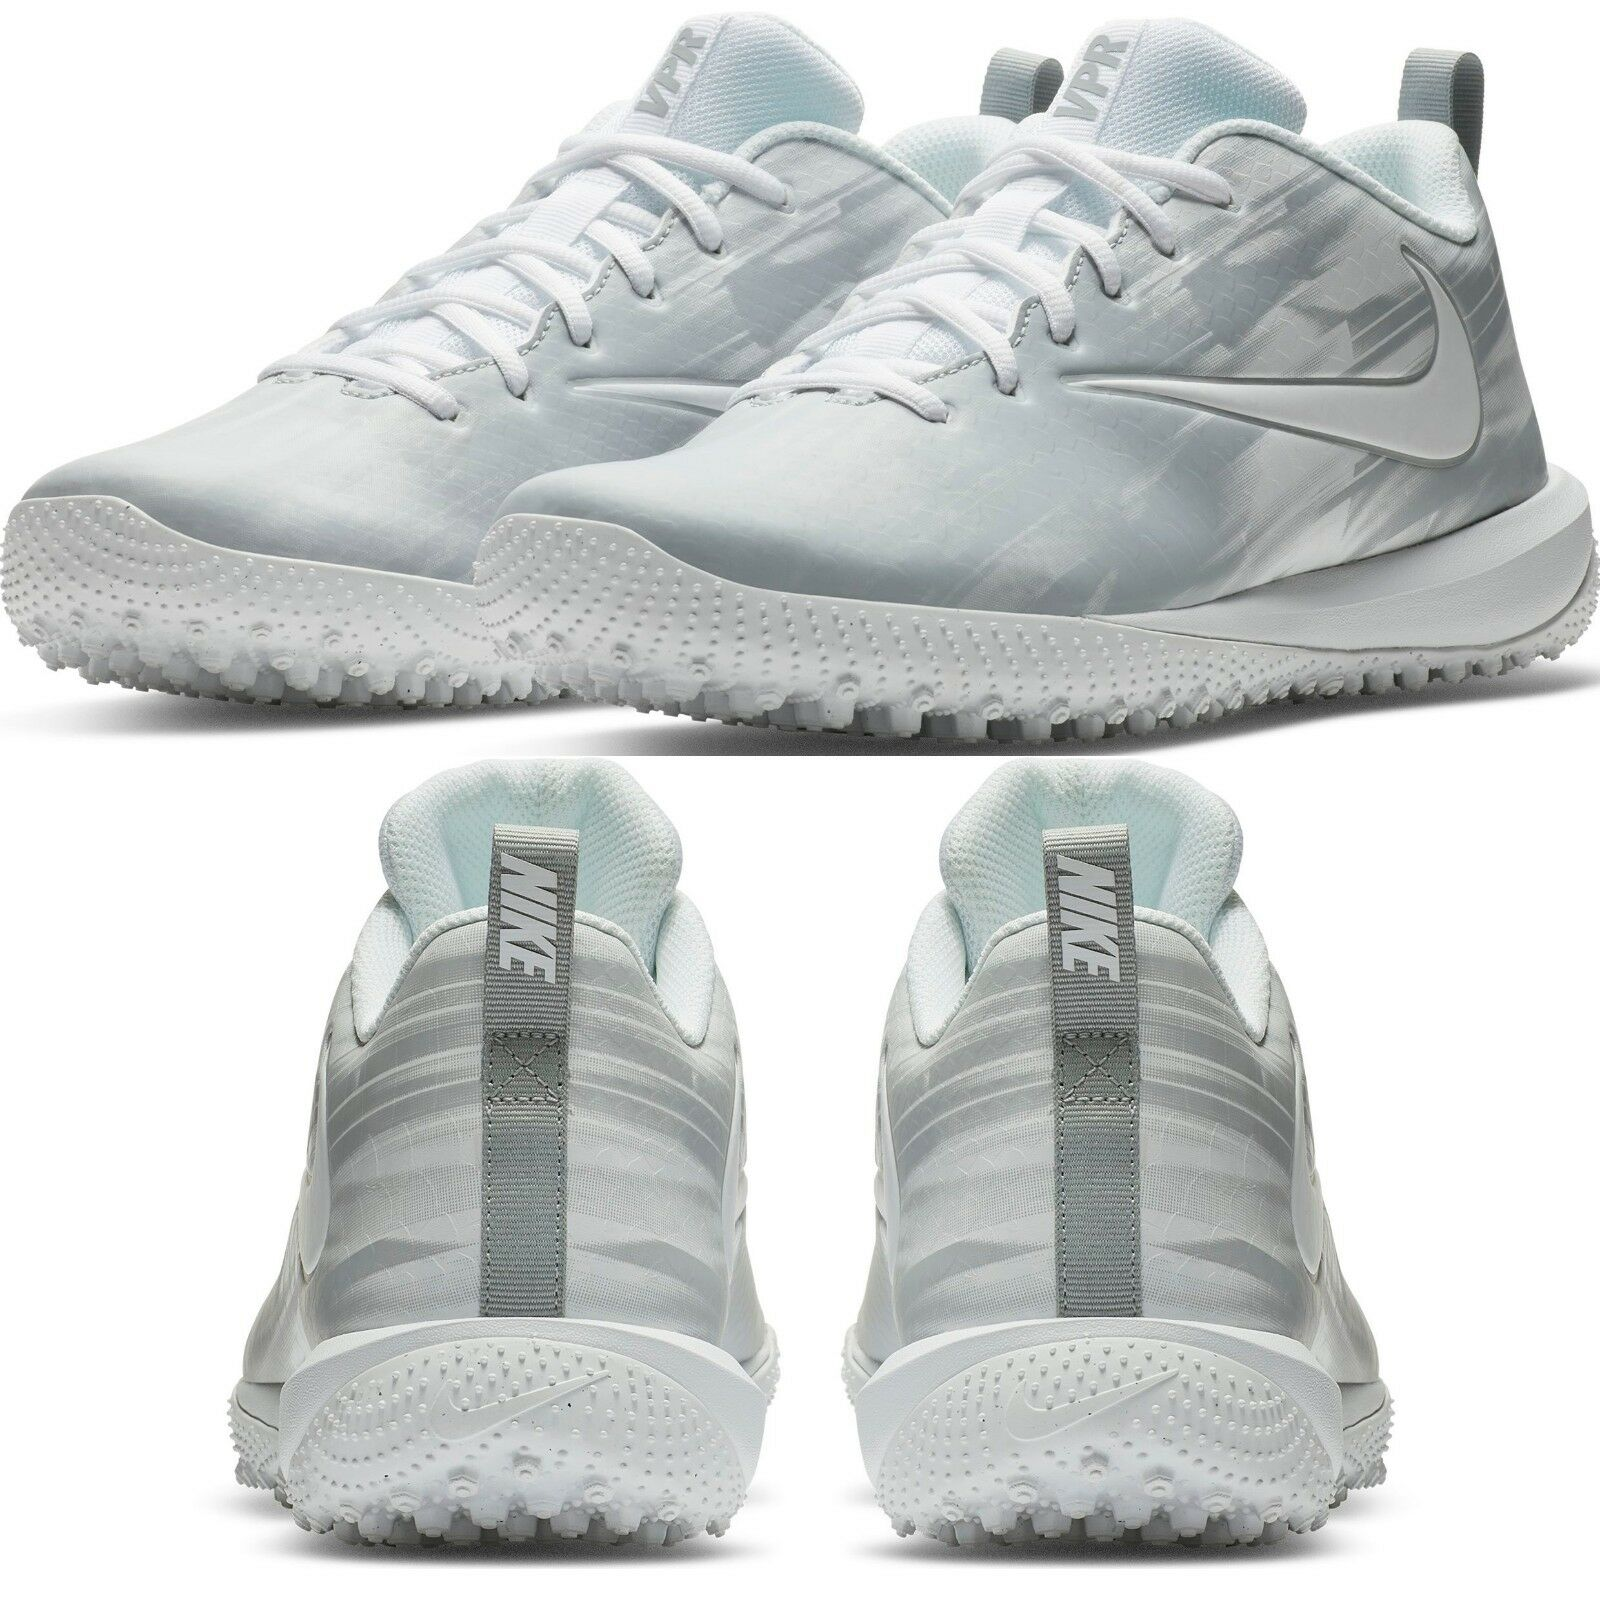 Nike Vapor Varsity Low Turf LAX Men's Lacrosse Cleat Comfy shoes White Wolf Grey